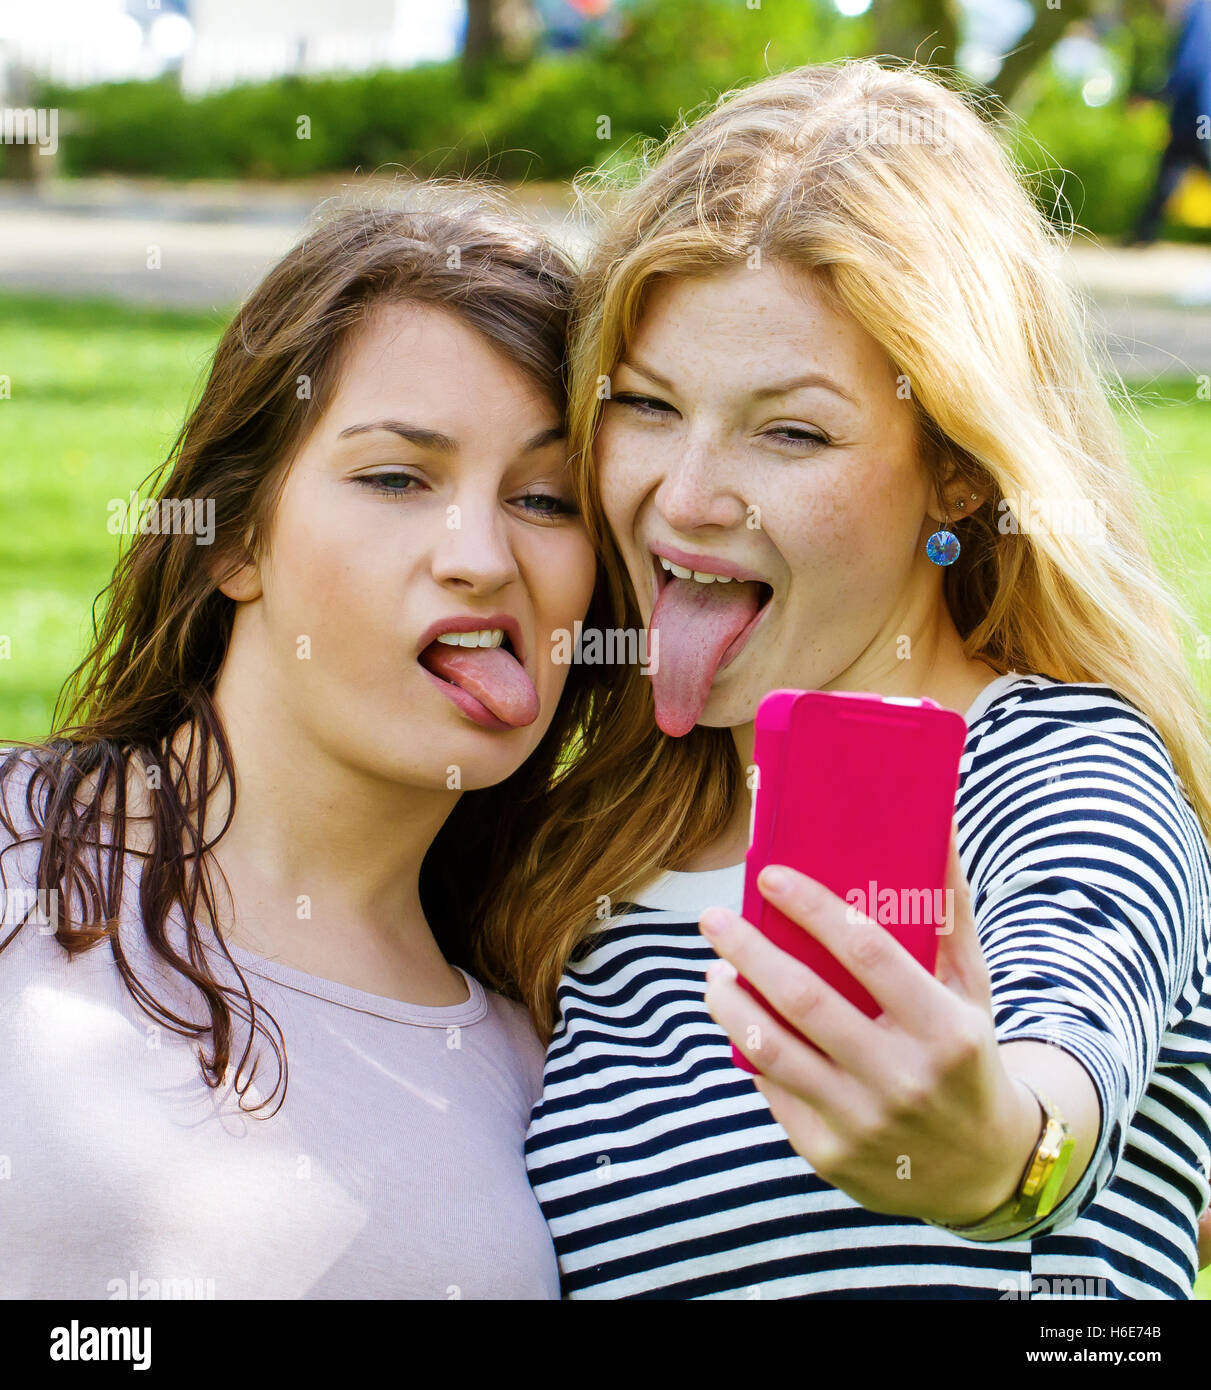 Girls taking a funny selfie and sticking tongue out - Stock Image